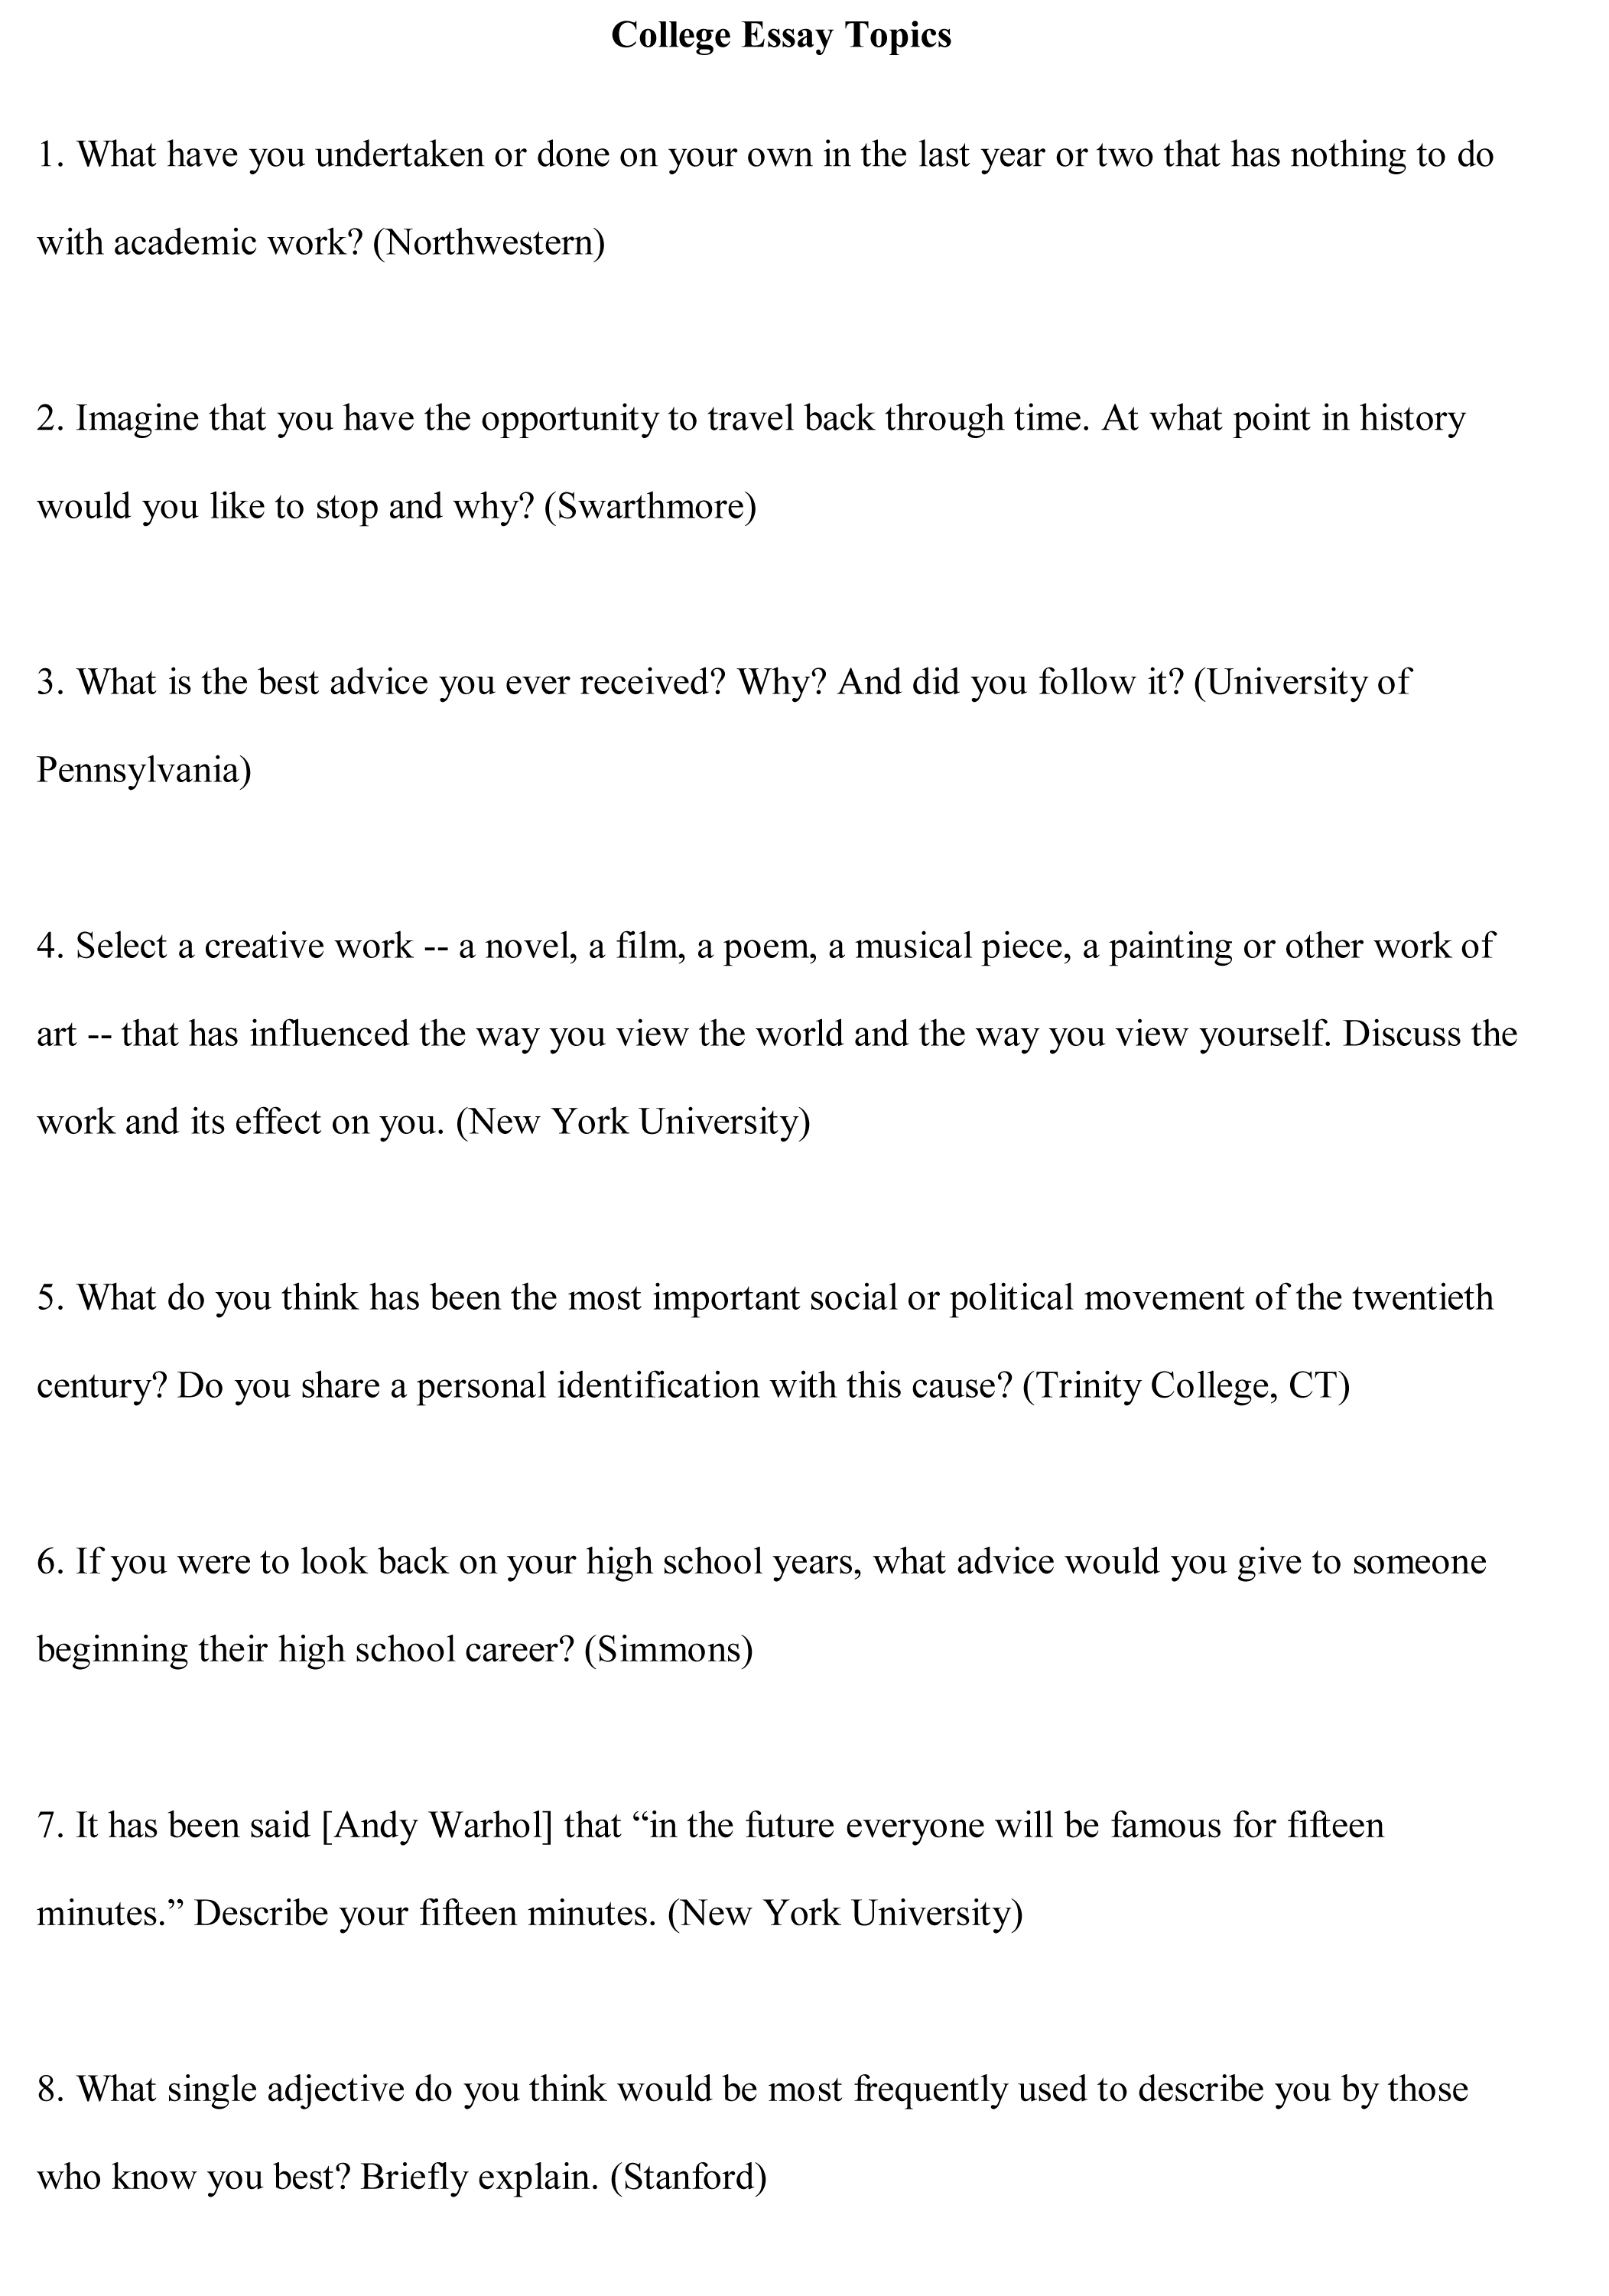 016 College Essay Topics Free Sample Example Argumentative Rare Prompts Persuasive For Students Unique Writing 6th Grade Full